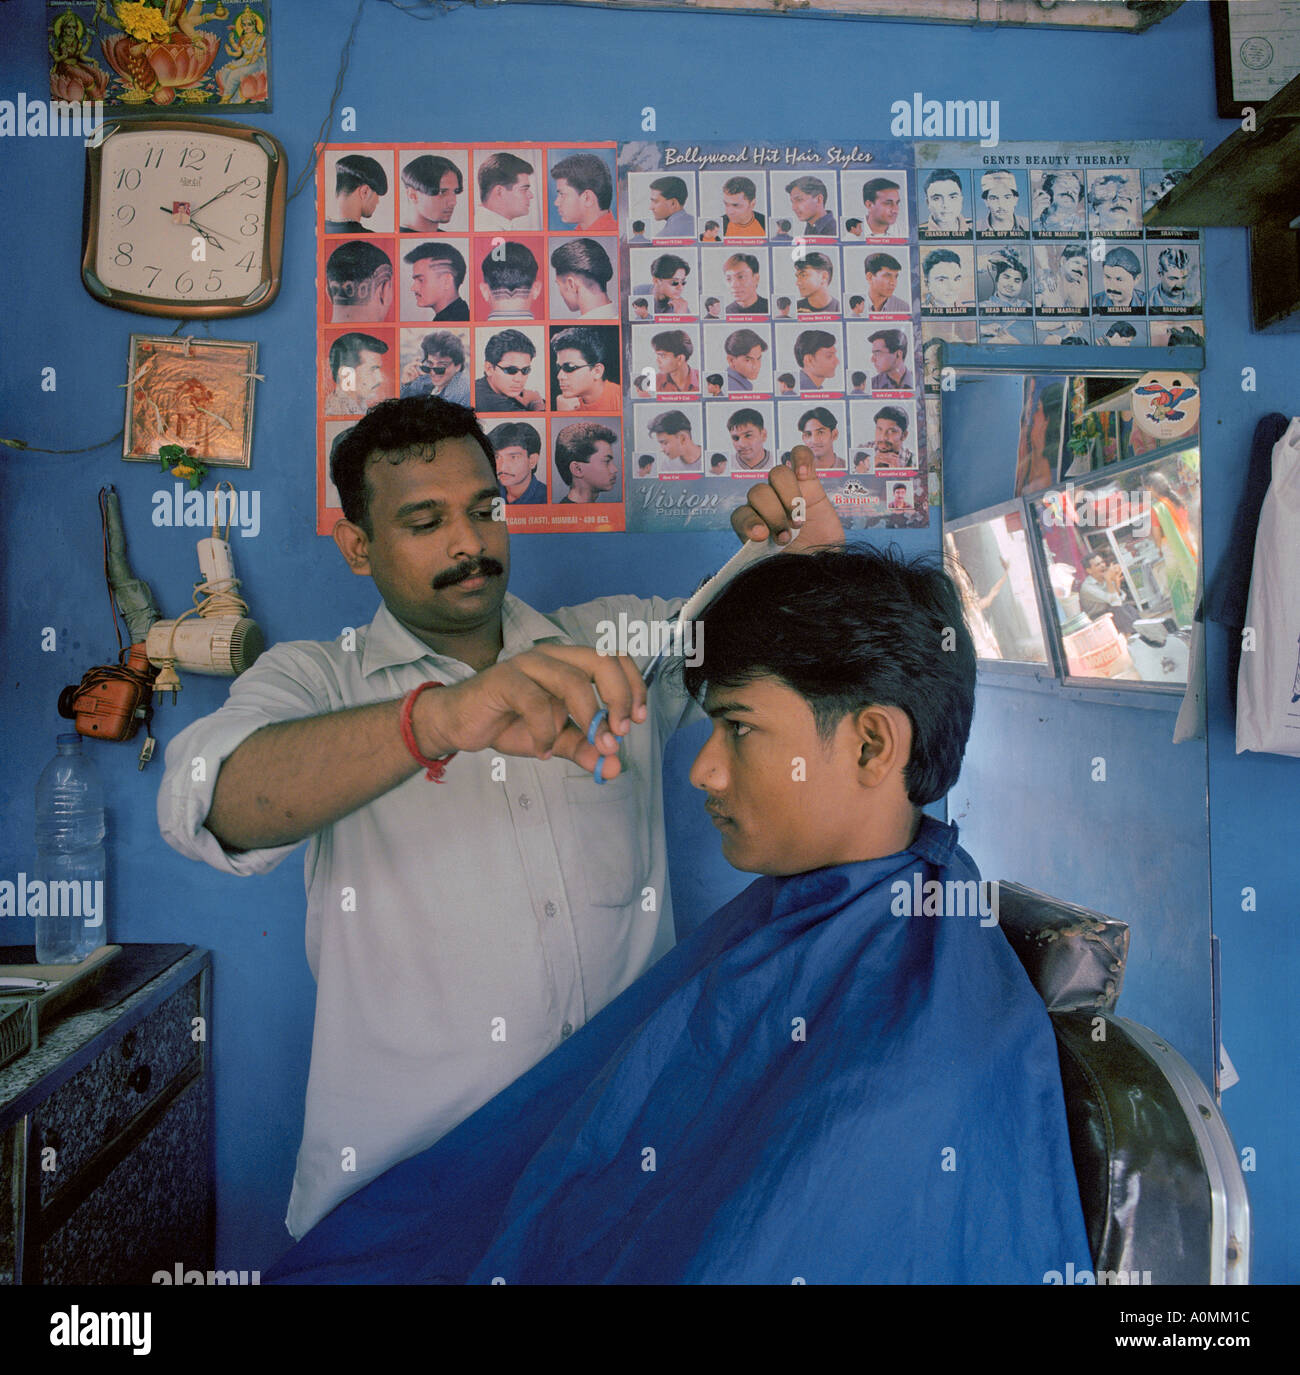 Rva92592 A Hair Cutting Saloon In A Slum With Charts Of Popular